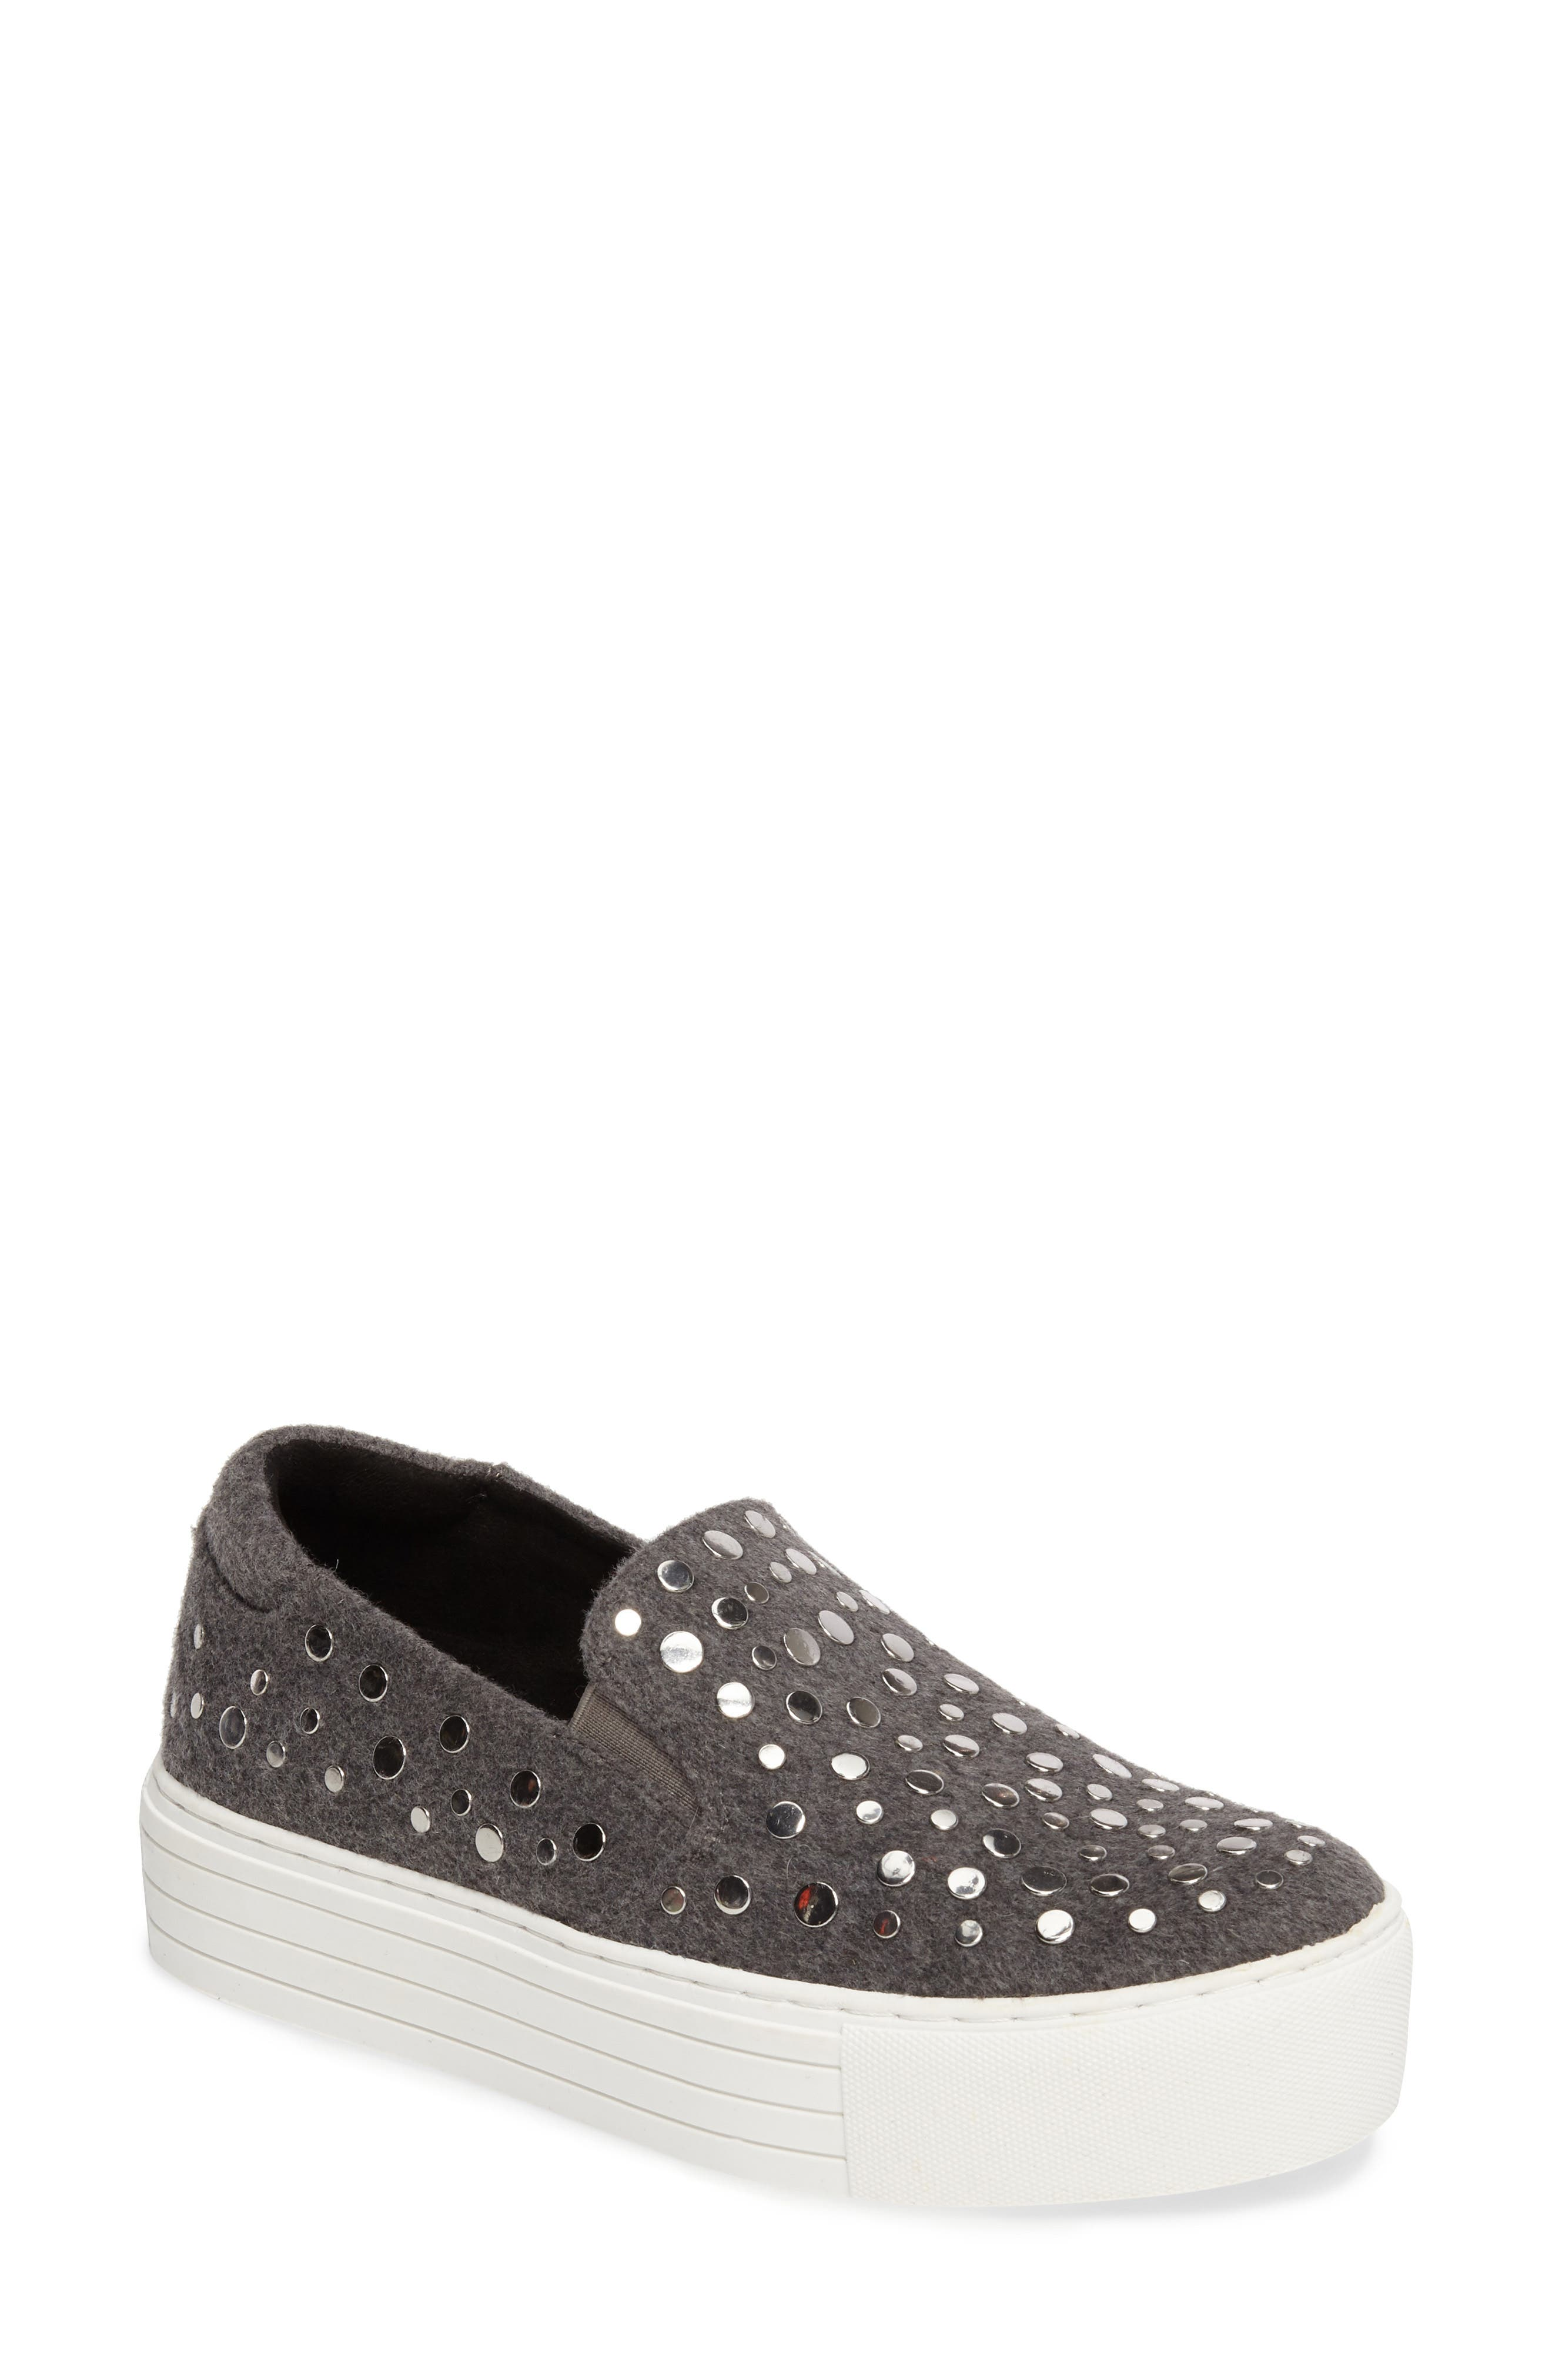 Jeyda Slip-On Sneaker,                             Main thumbnail 1, color,                             Grey Felt Fabric